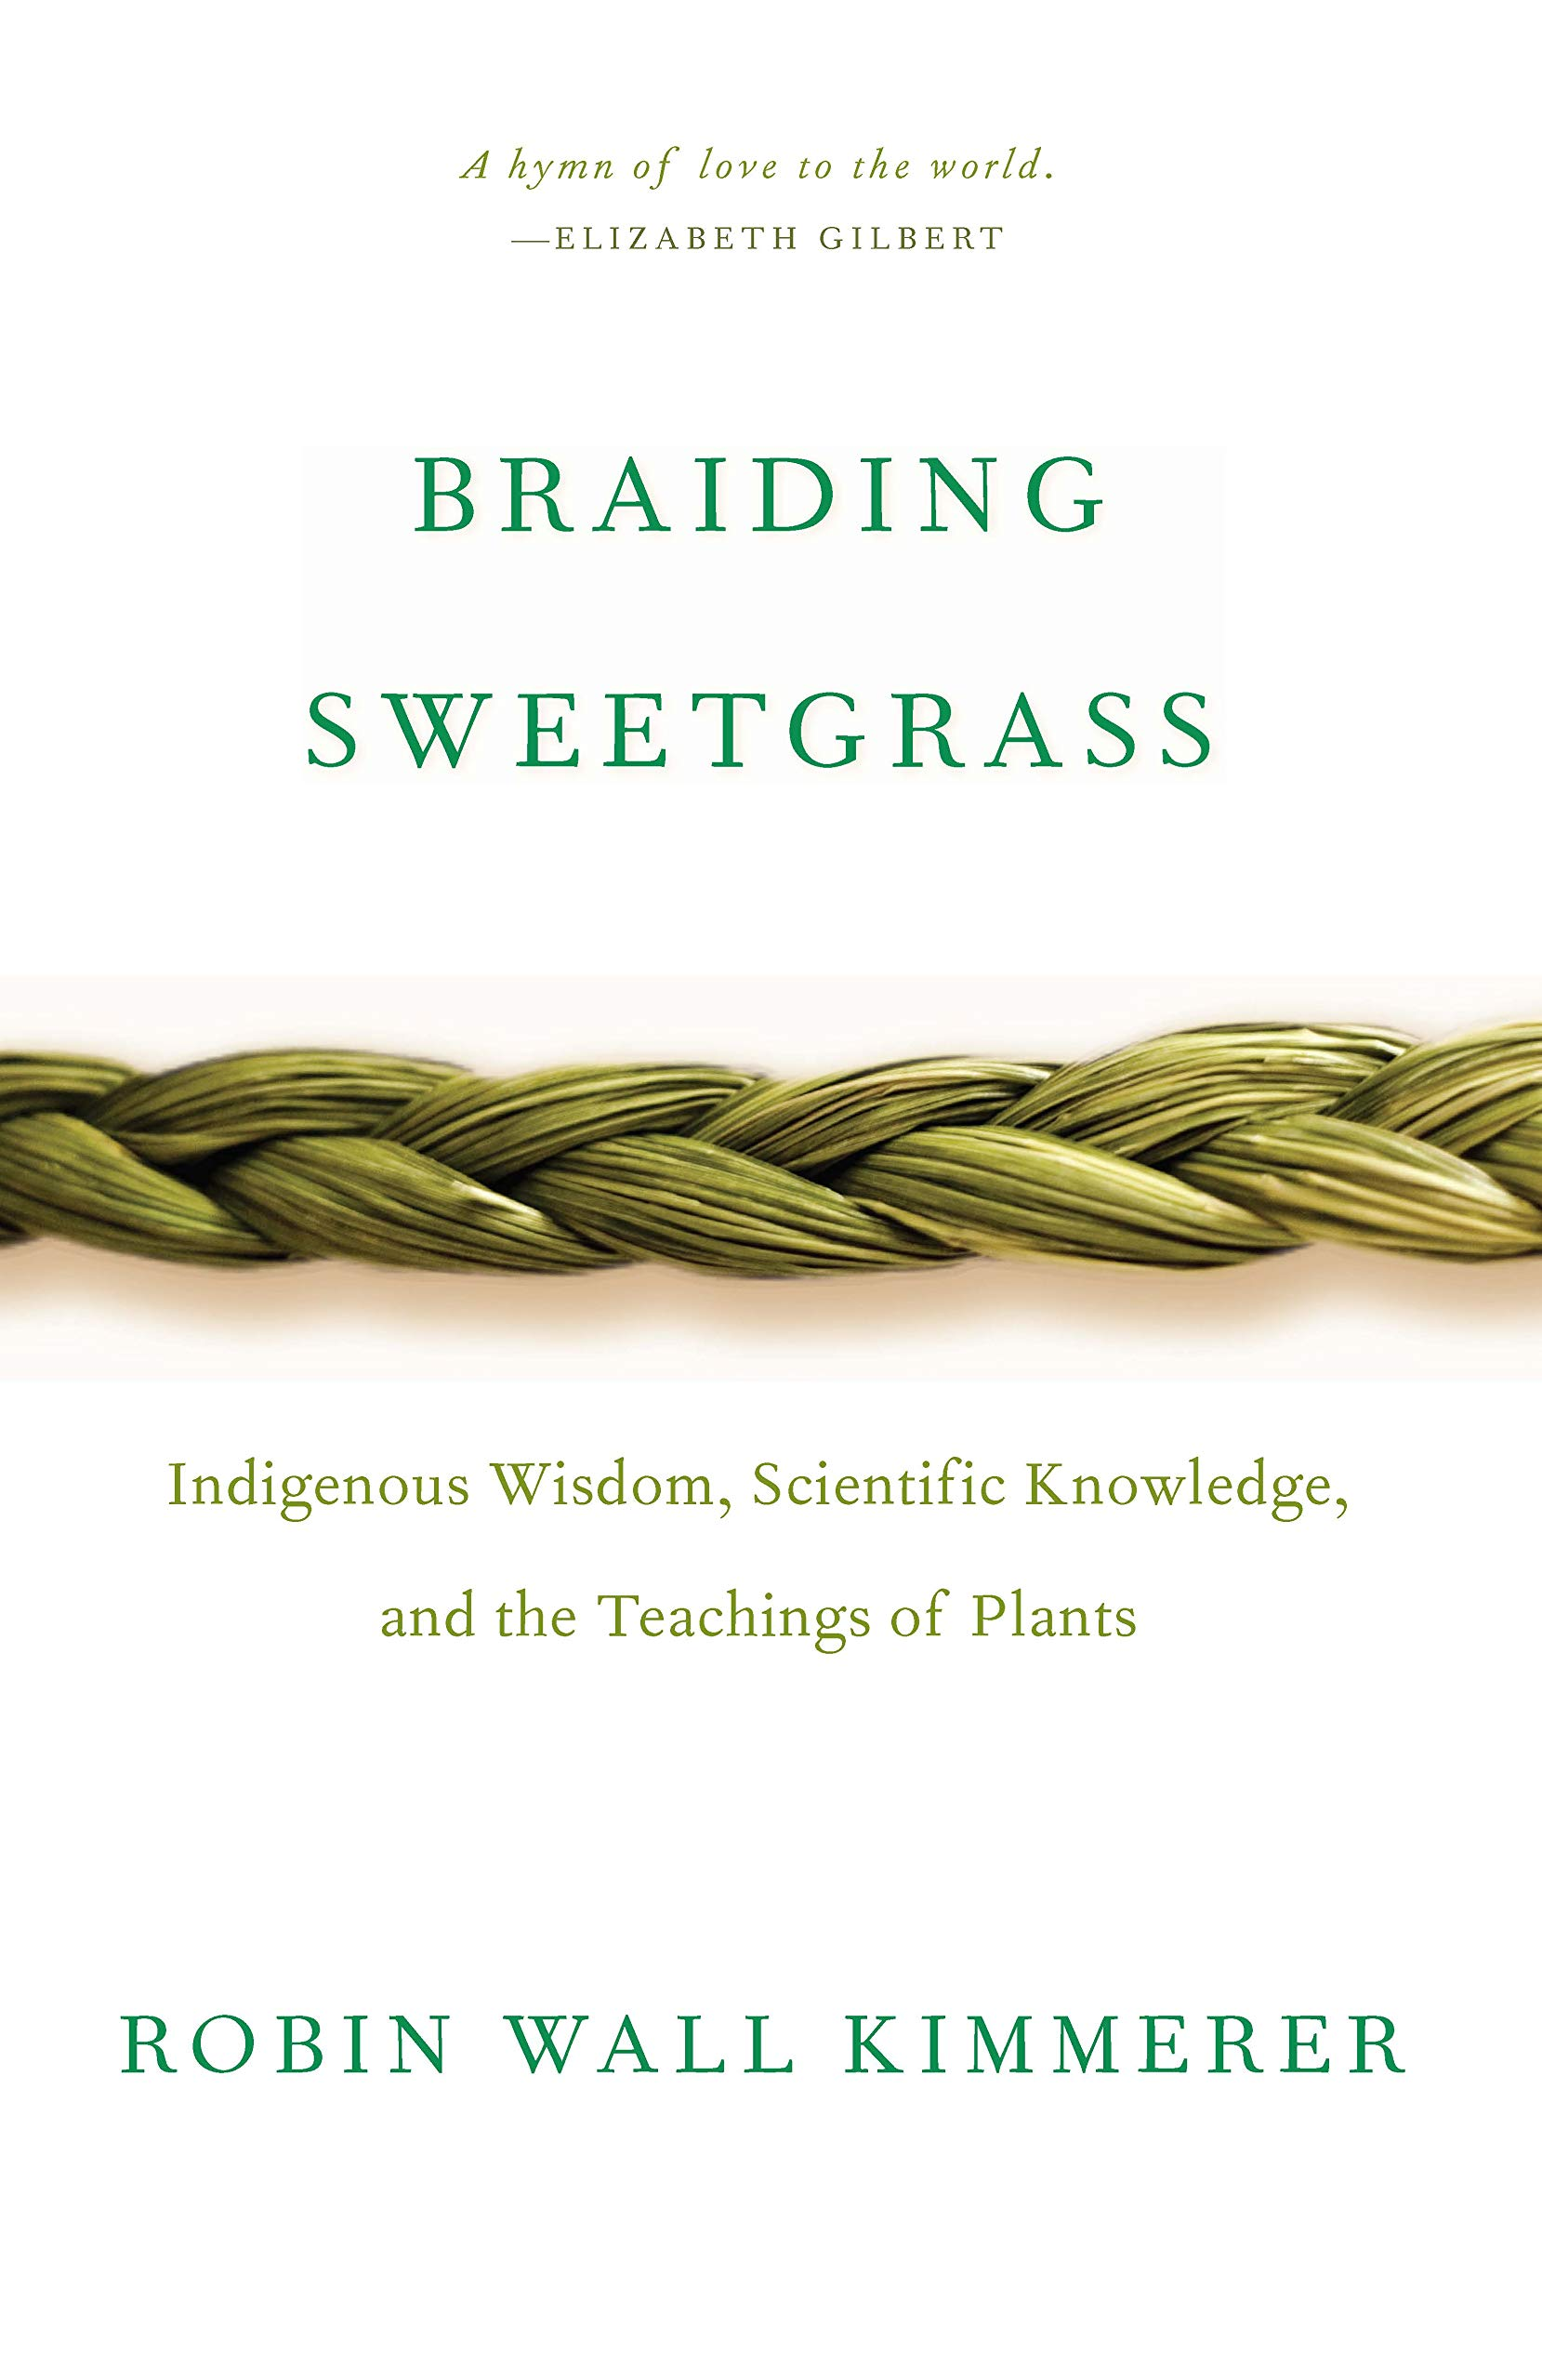 Cover image of Braiding Sweetgrass by Robin Wall Kimmerer